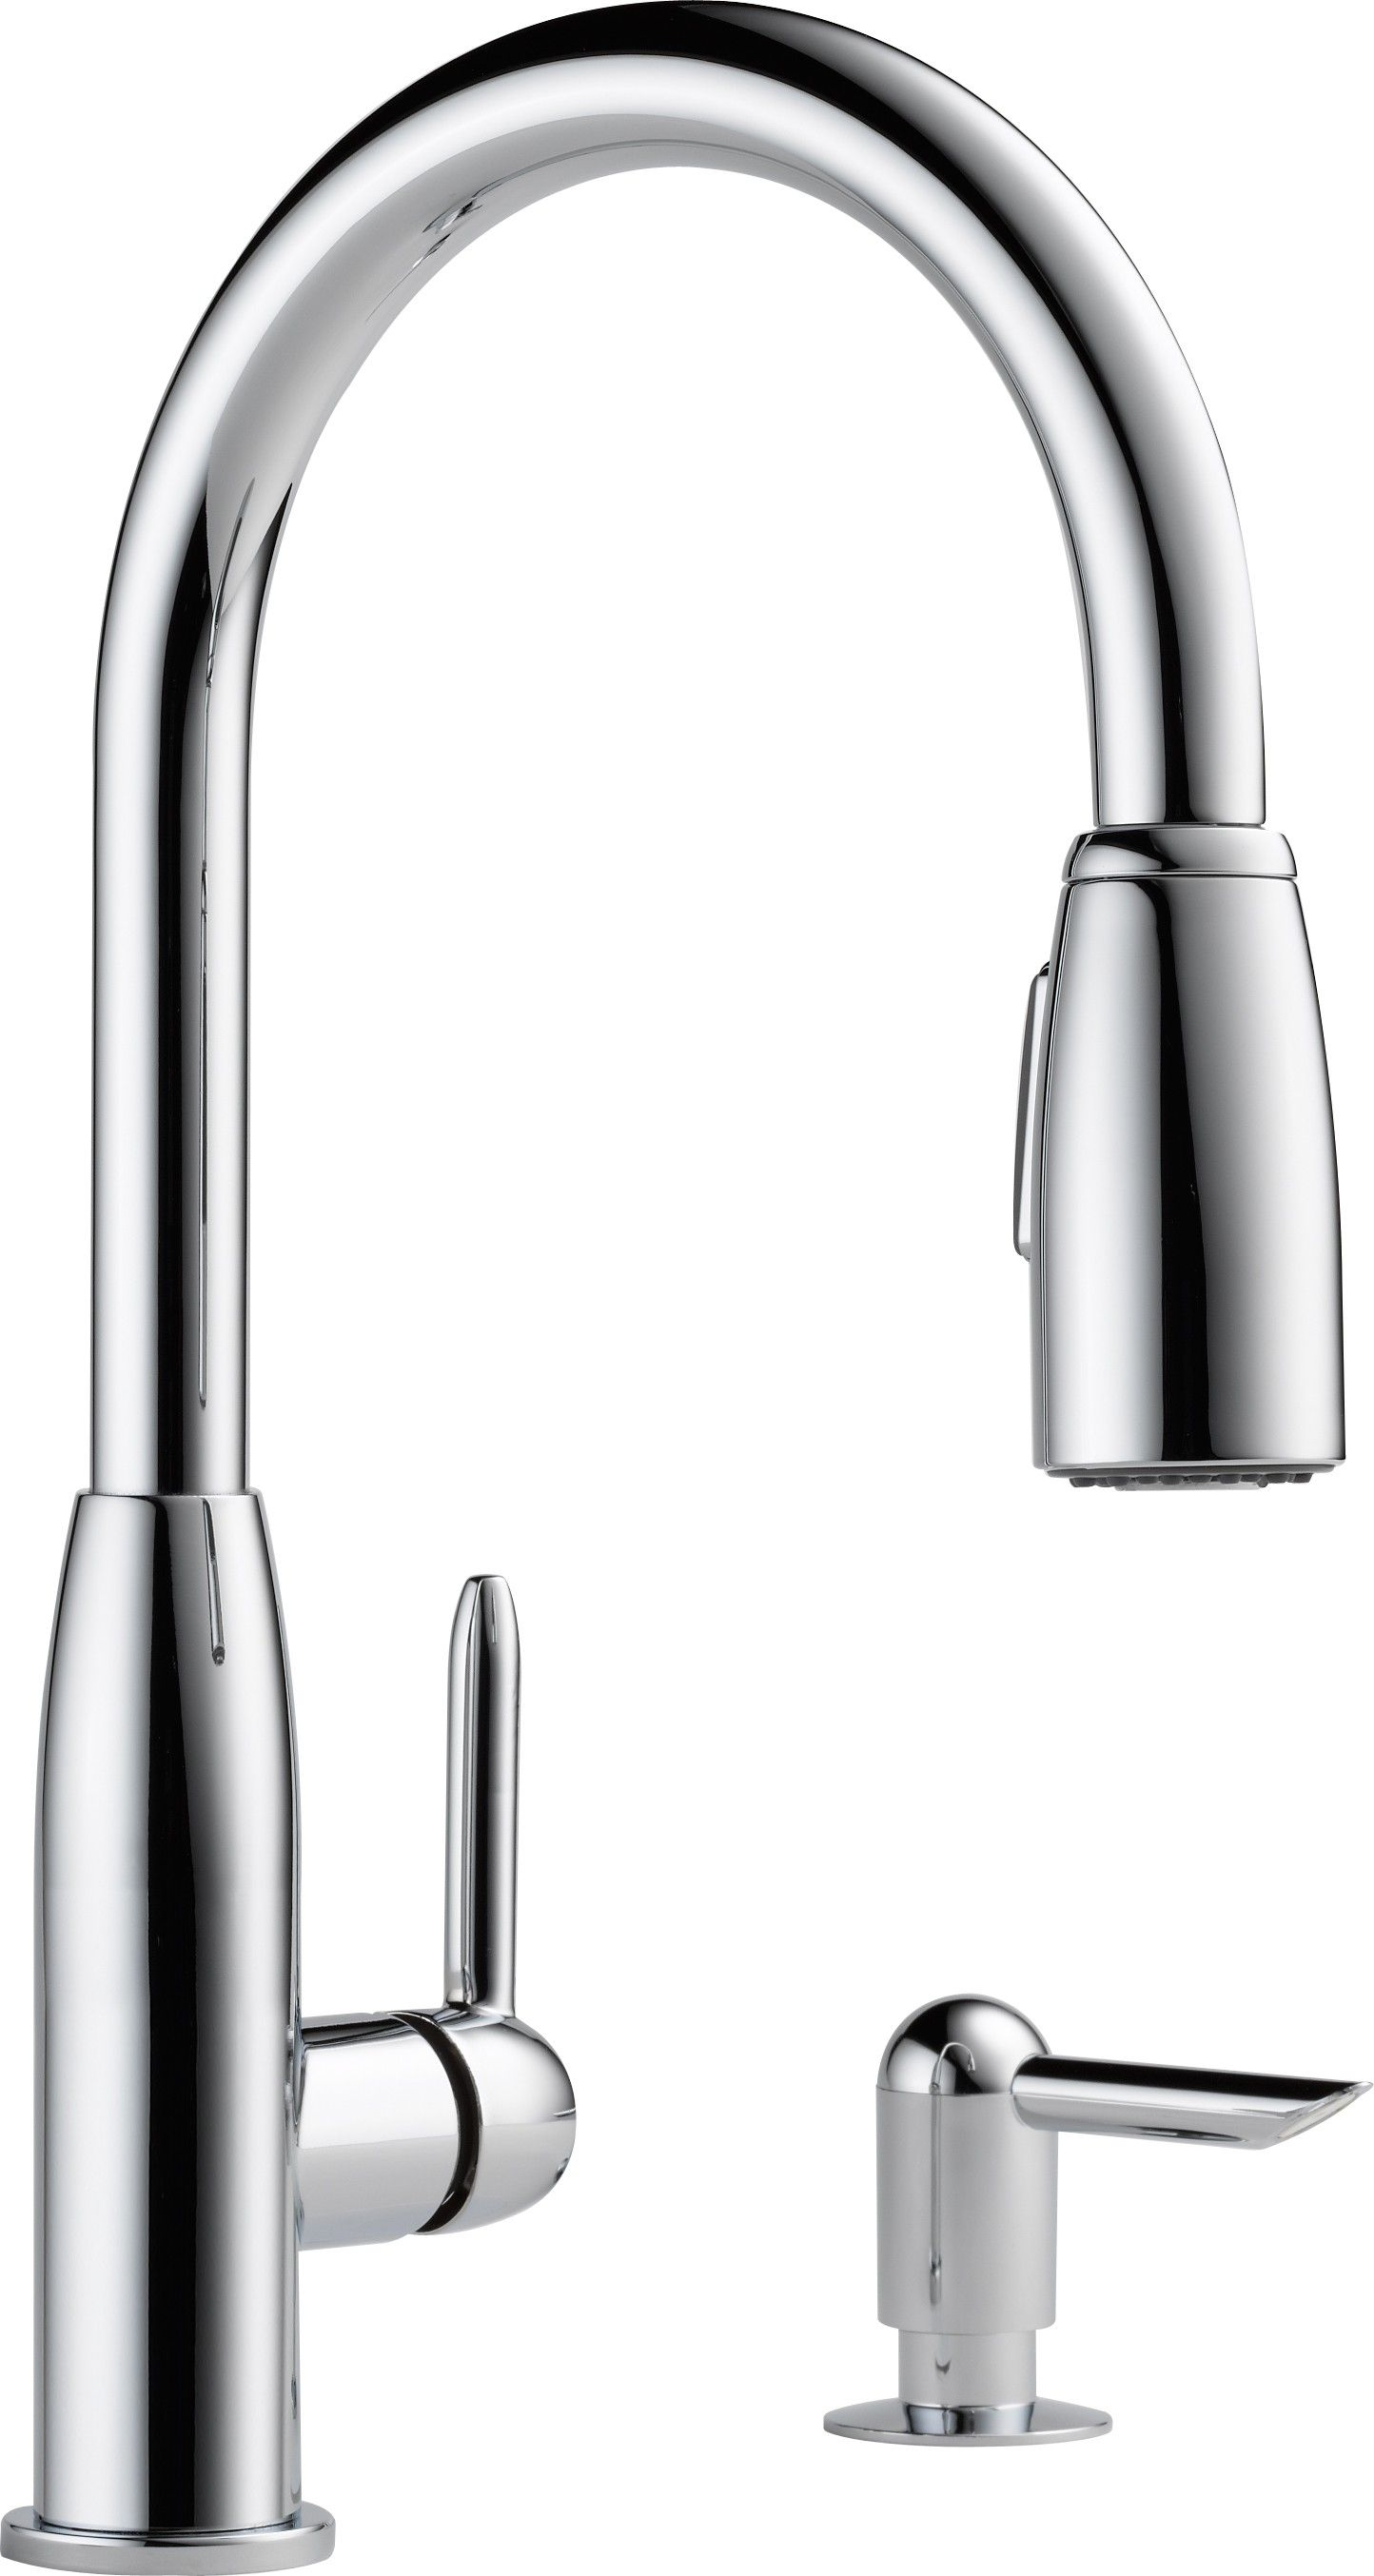 Peerless P LF SD Apex Single Handle Pull Down Kitchen Faucet